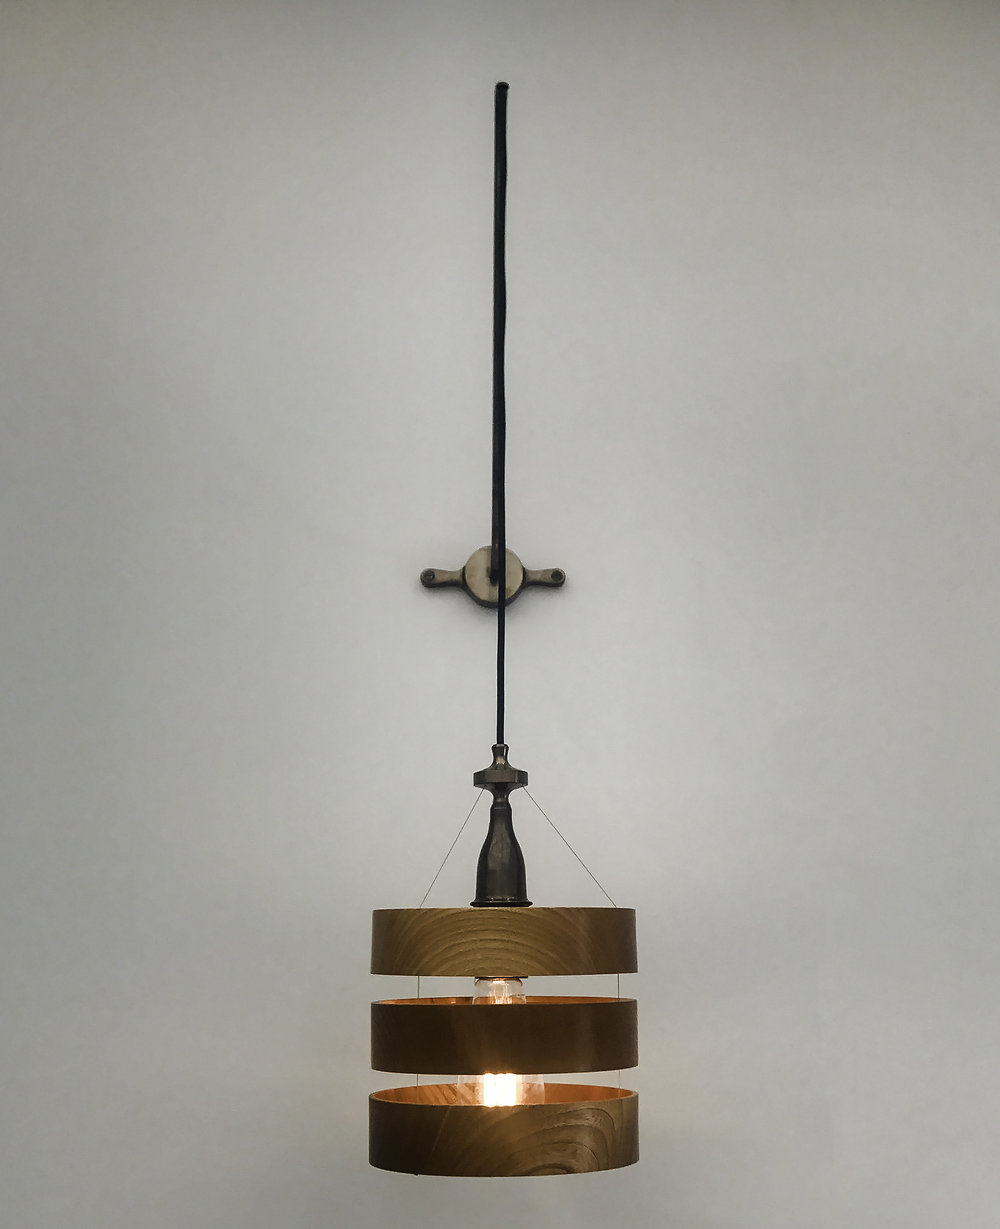 Treoran  wall light -  Wood, blackened brass; hand finished with natural oils and wax.